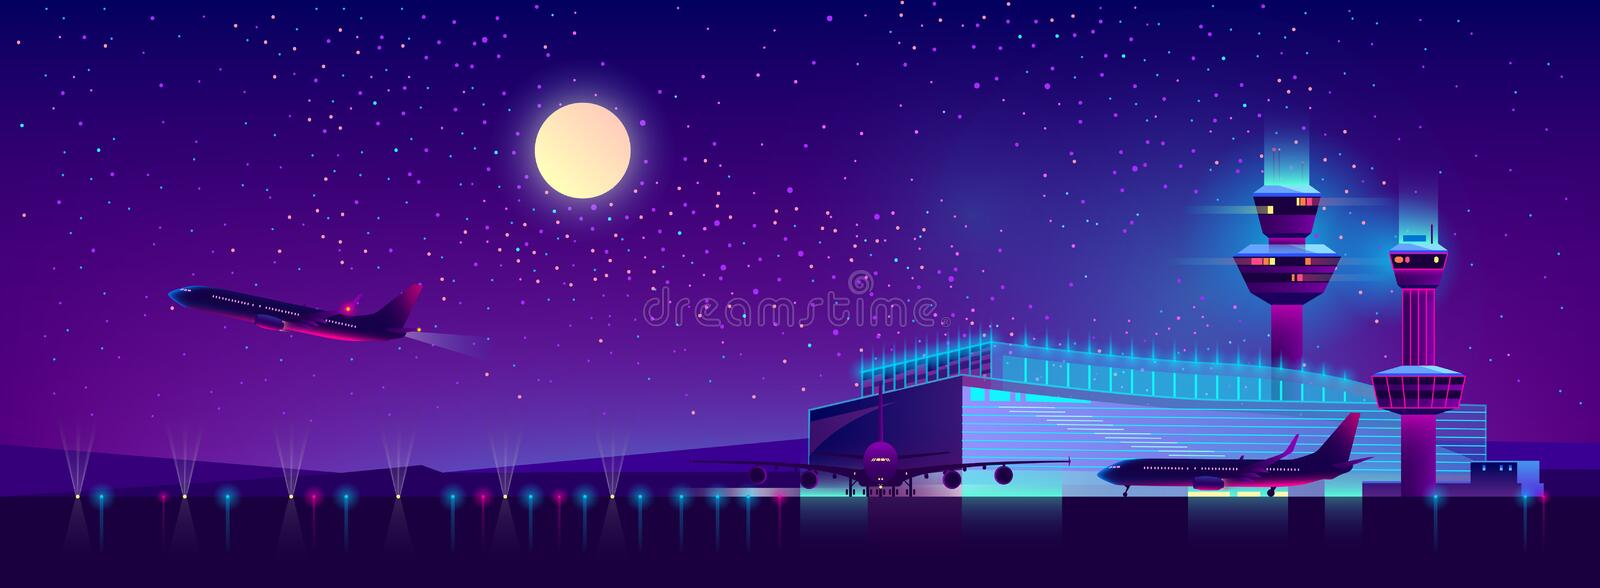 Vector night airport in ultraviolet colors, background. Vector background of night airport with takeoff of the plane in ultraviolet colors. Terminal, control vector illustration